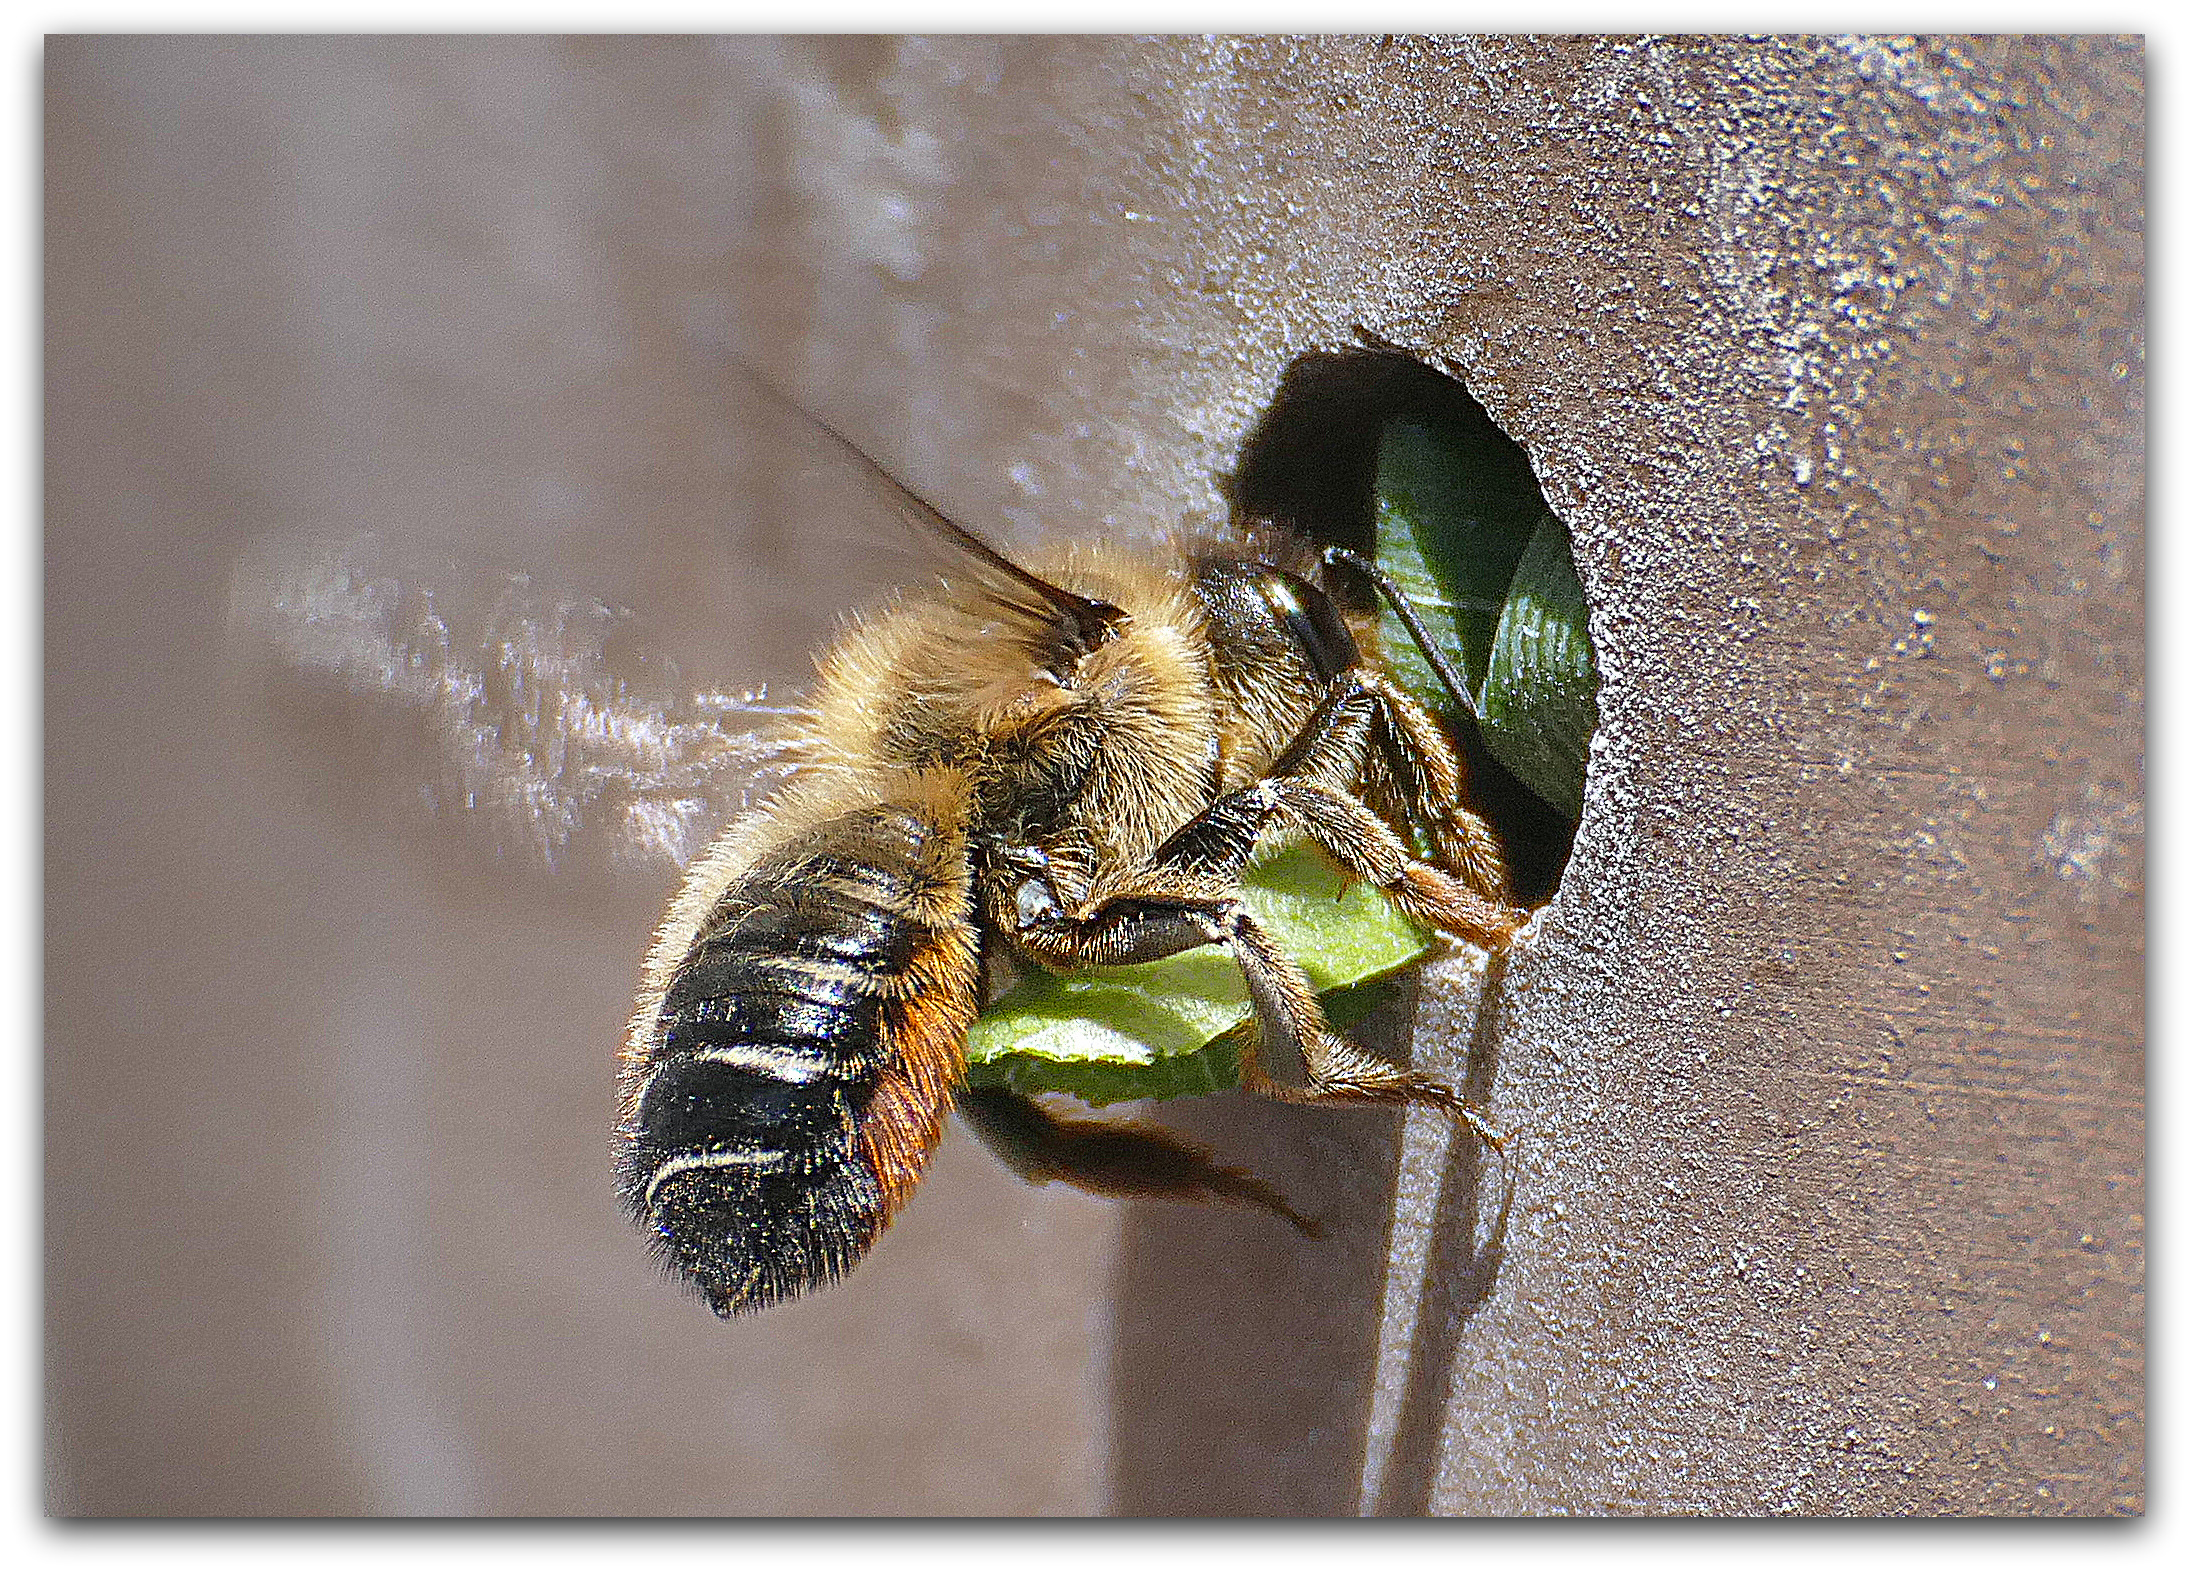 A leafcutter bee lining its nest with pieces of leaf